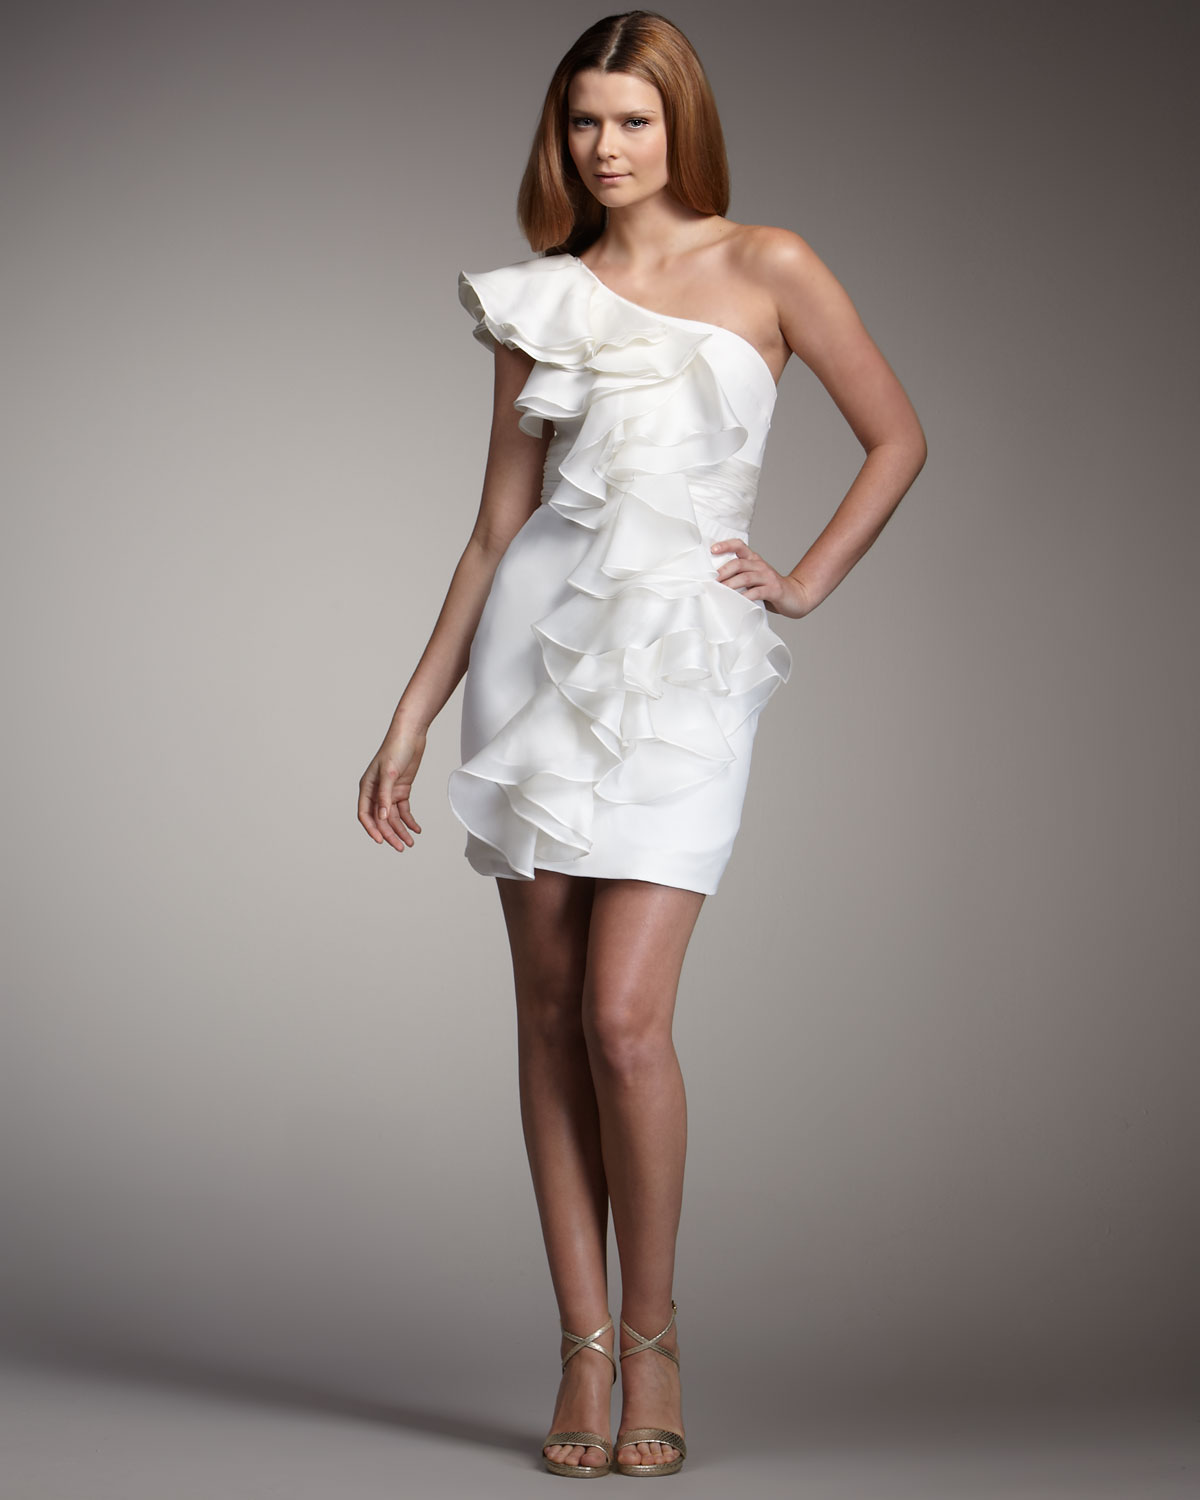 77b9cc9b089 Marchesa notte One-shoulder Ruffle Dress in White - Lyst